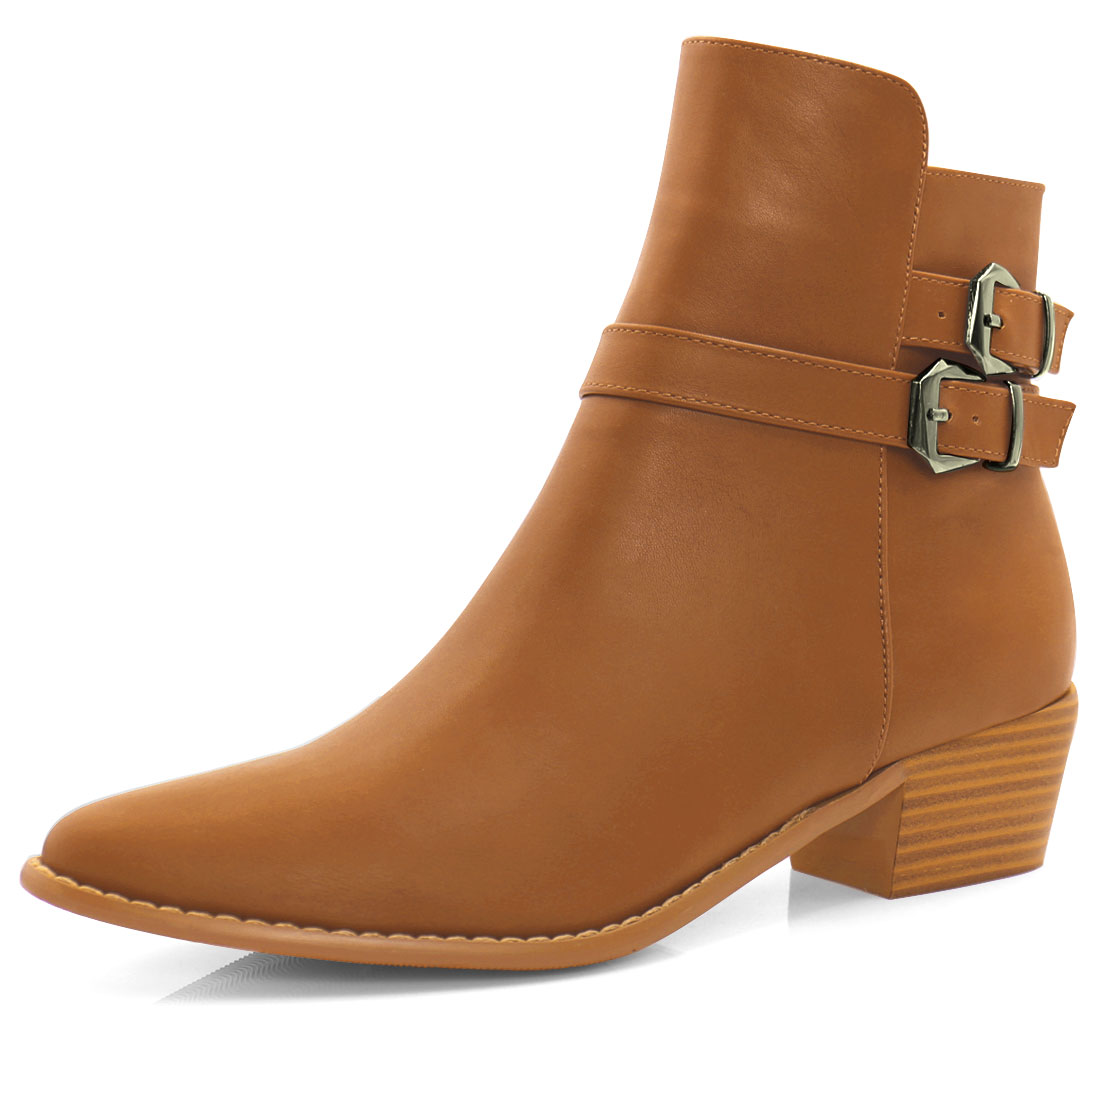 Women Pointed Toe Buckled Strap Zipper Ankle Boots Brown US 10